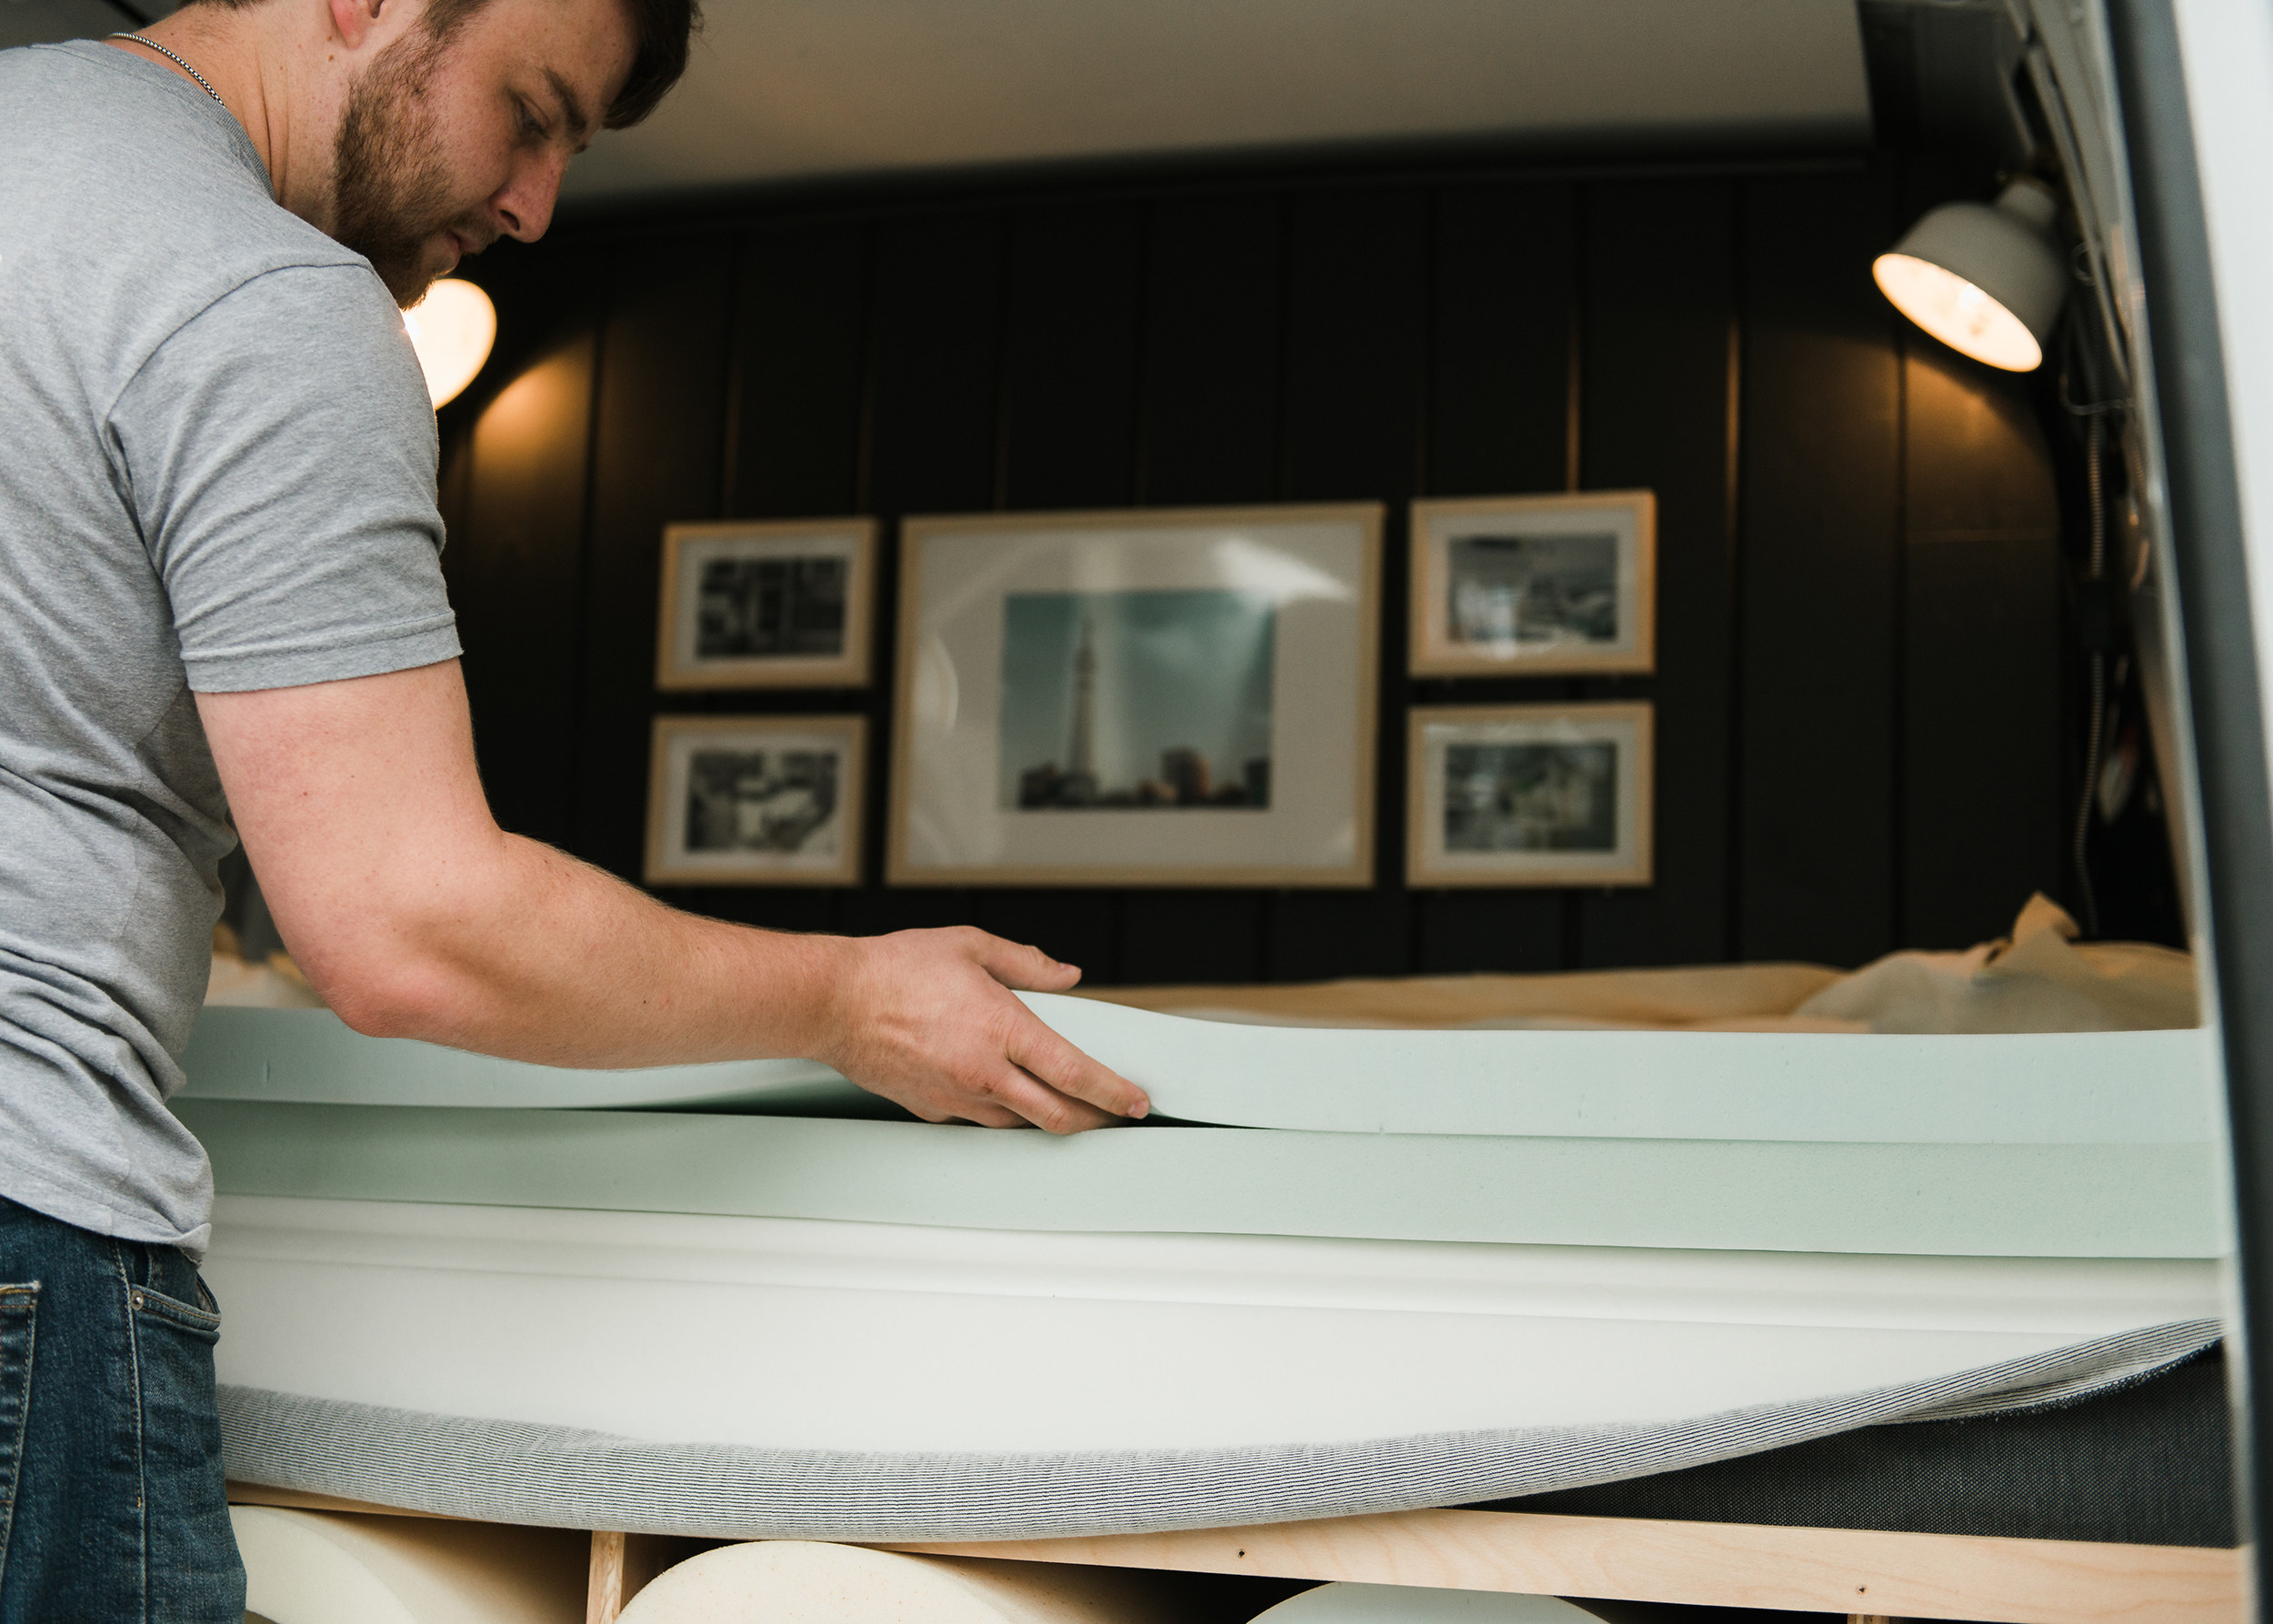 THE WORKSHOP - Thanks for visiting the Mattress Workshop, where your feedback is used to create the best mattresses possible. Please fill in the form below to receive $25 off your purchase of $100 or more.